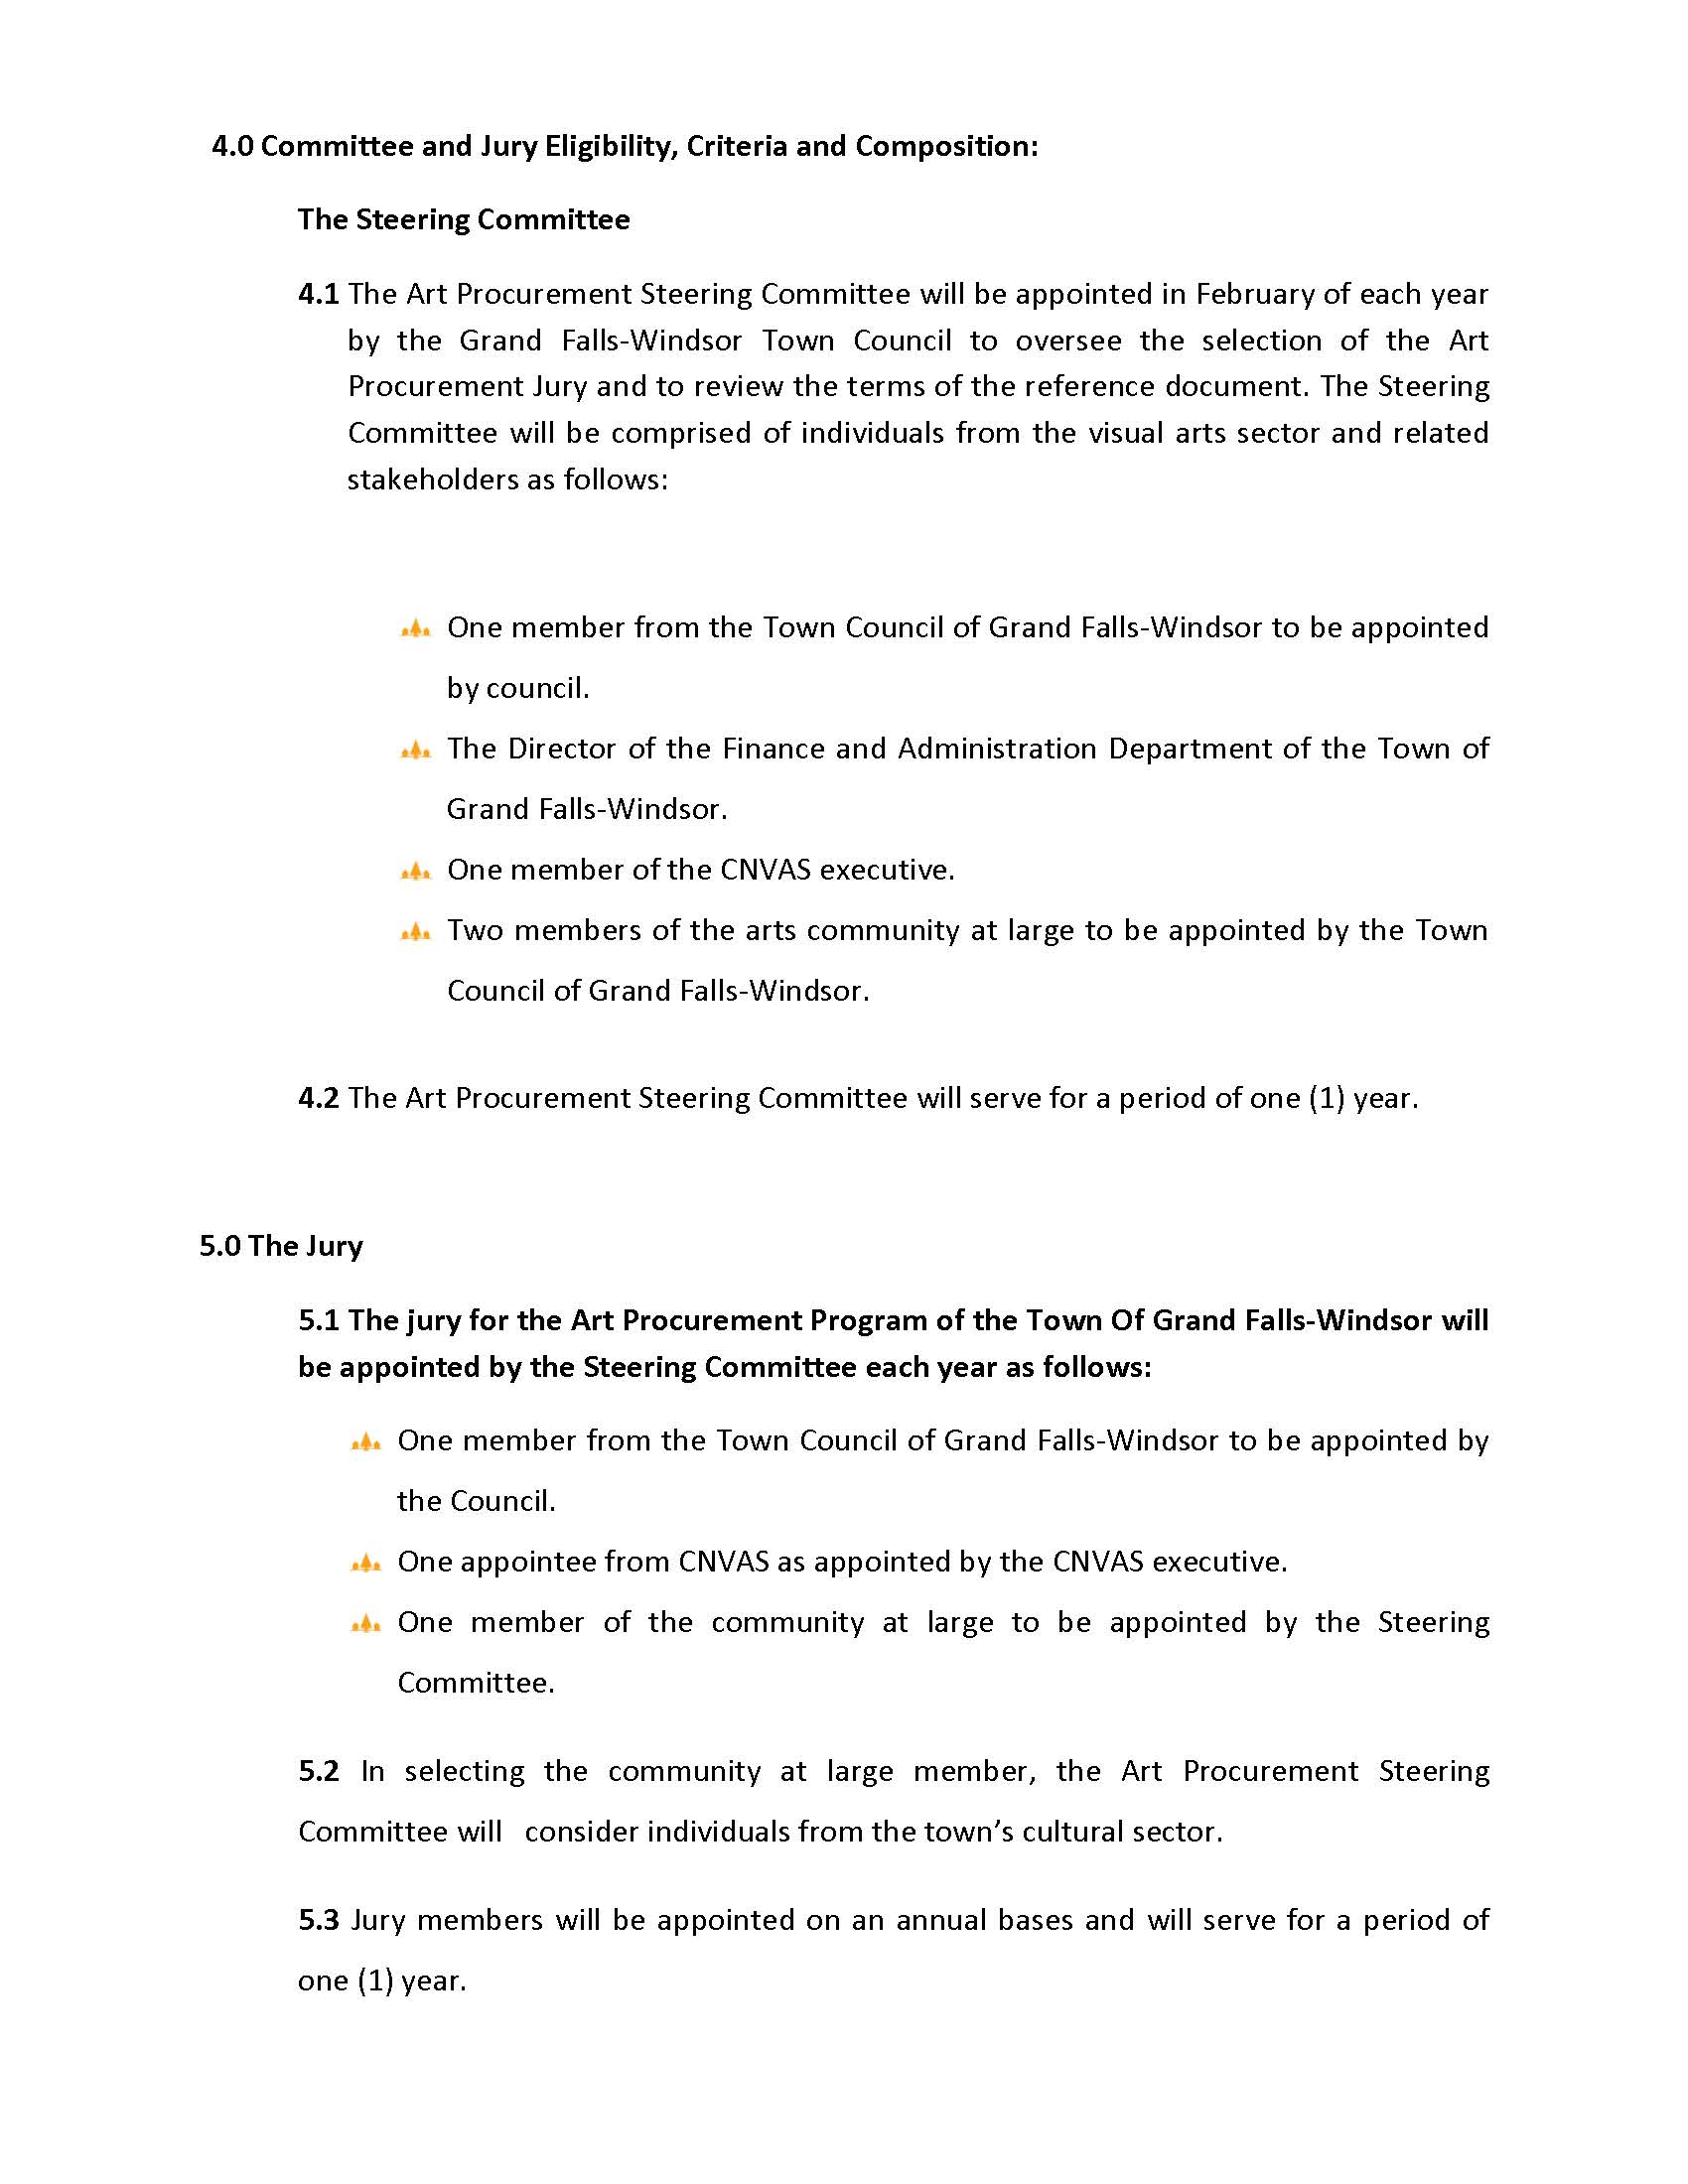 ART PROCUREMENT REGULATIONS 2017 Revised Page 5